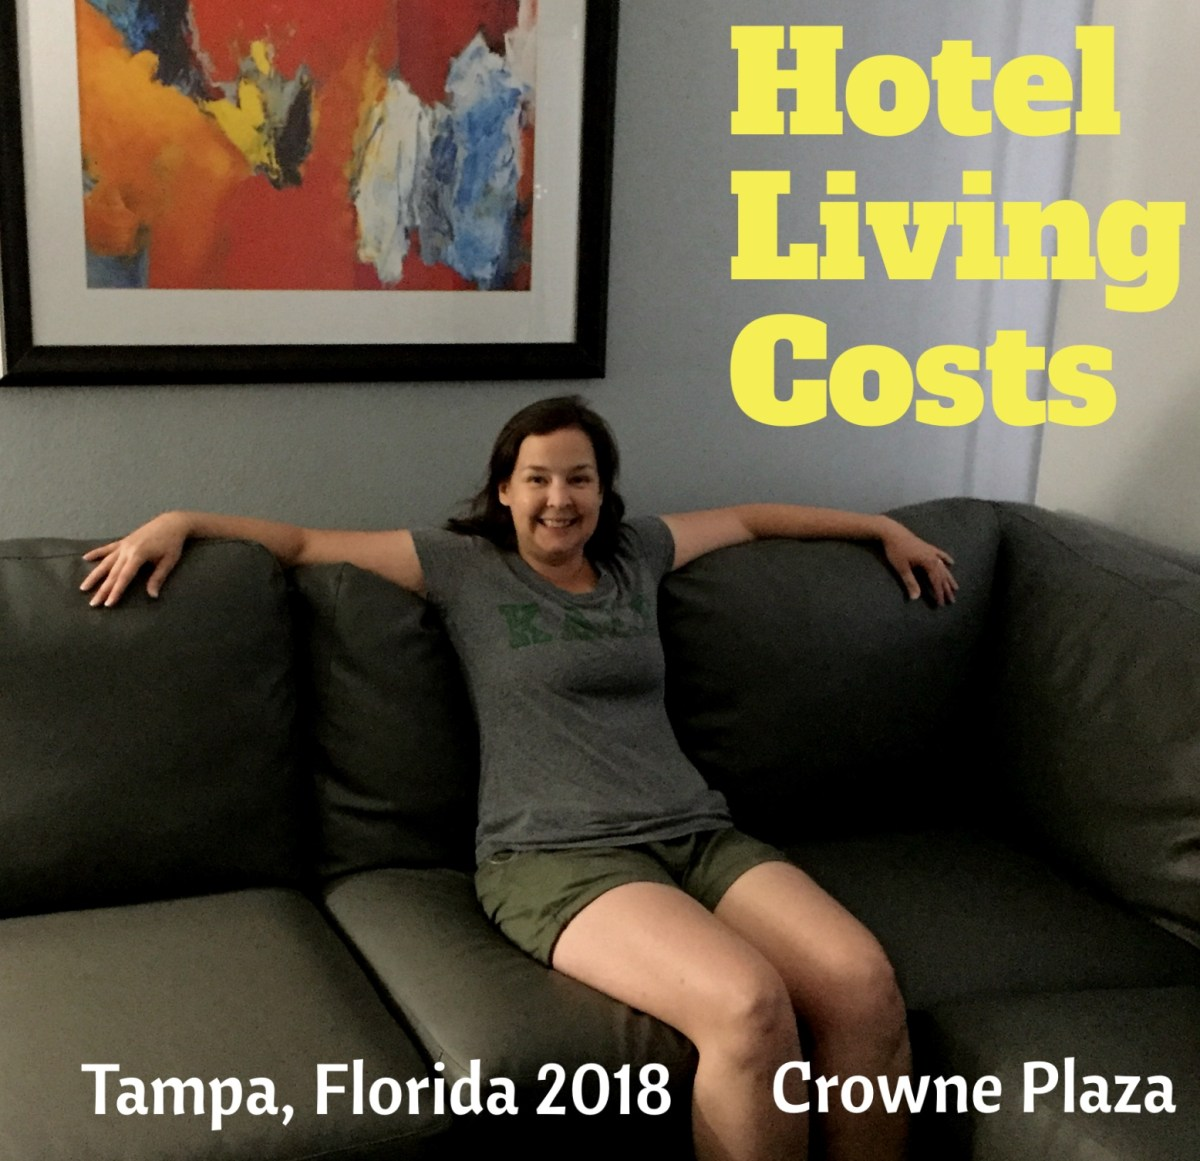 Actual Hotel Living Costs: Crowne Plaza